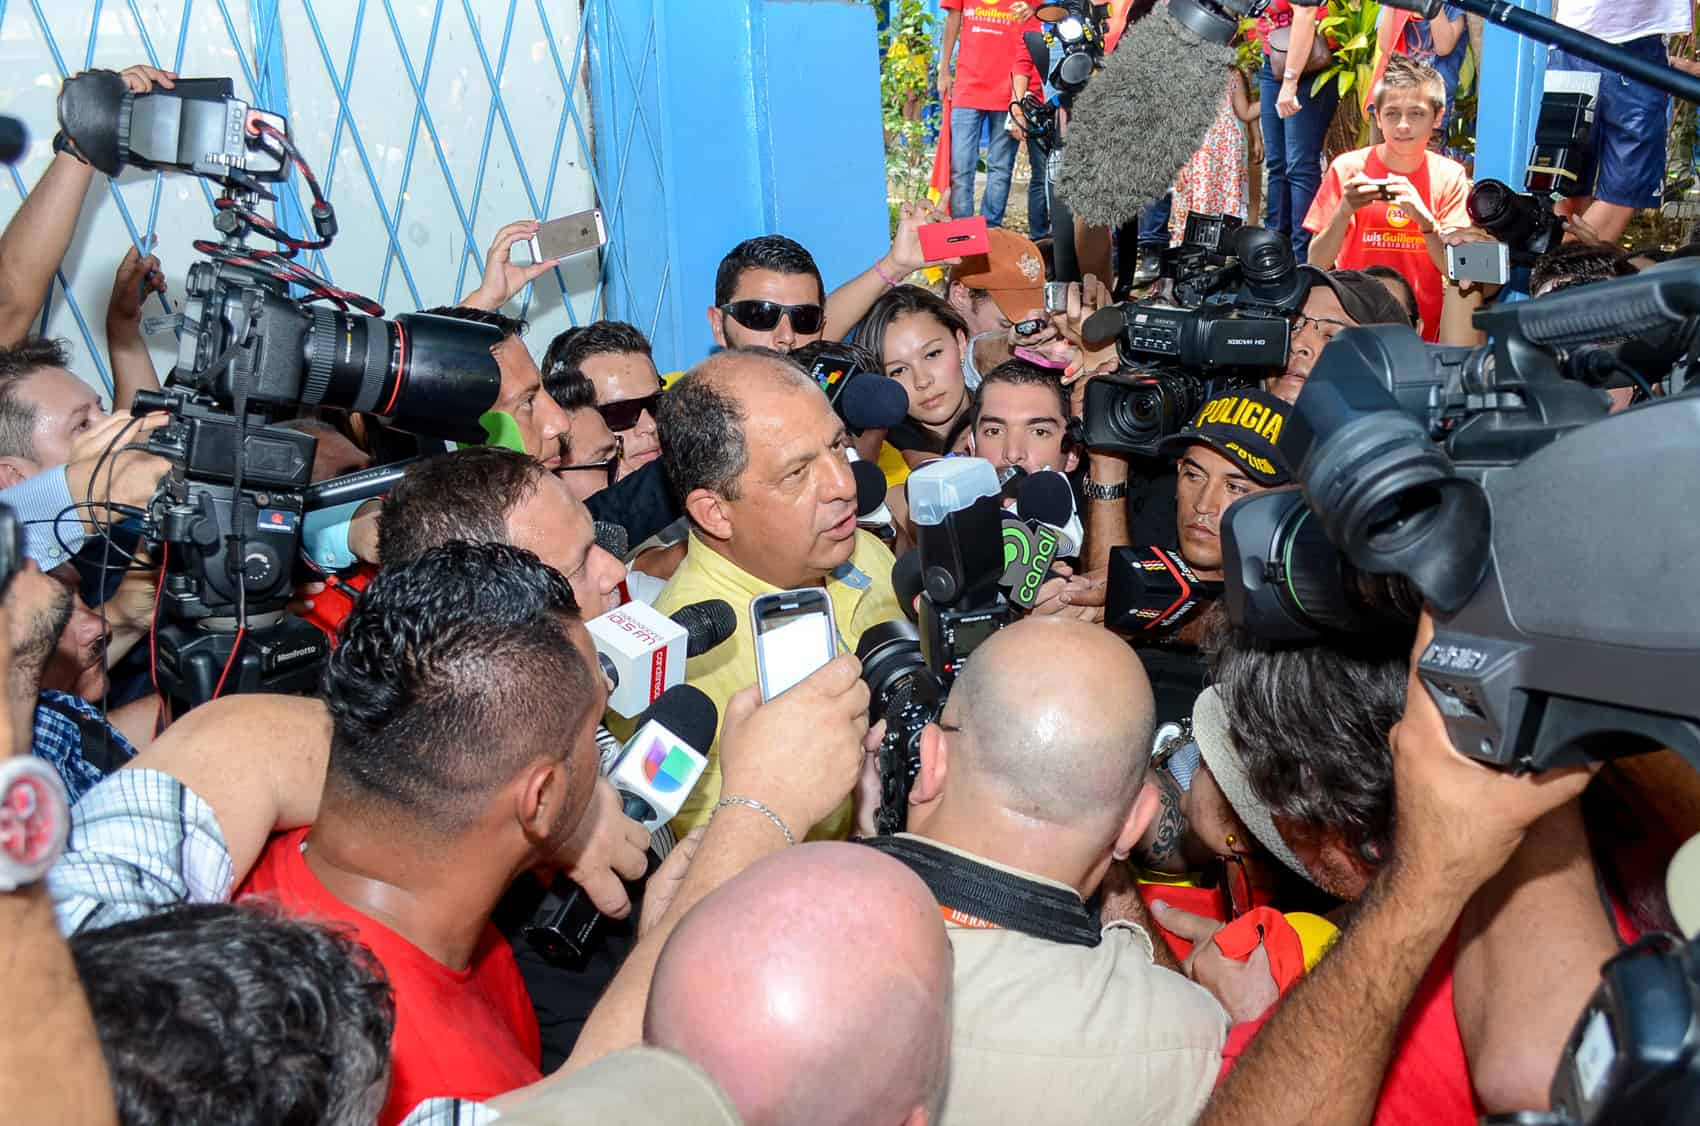 Then-candidate Luis Guillermo Solís addresses a more friendly media after casting his ballot.